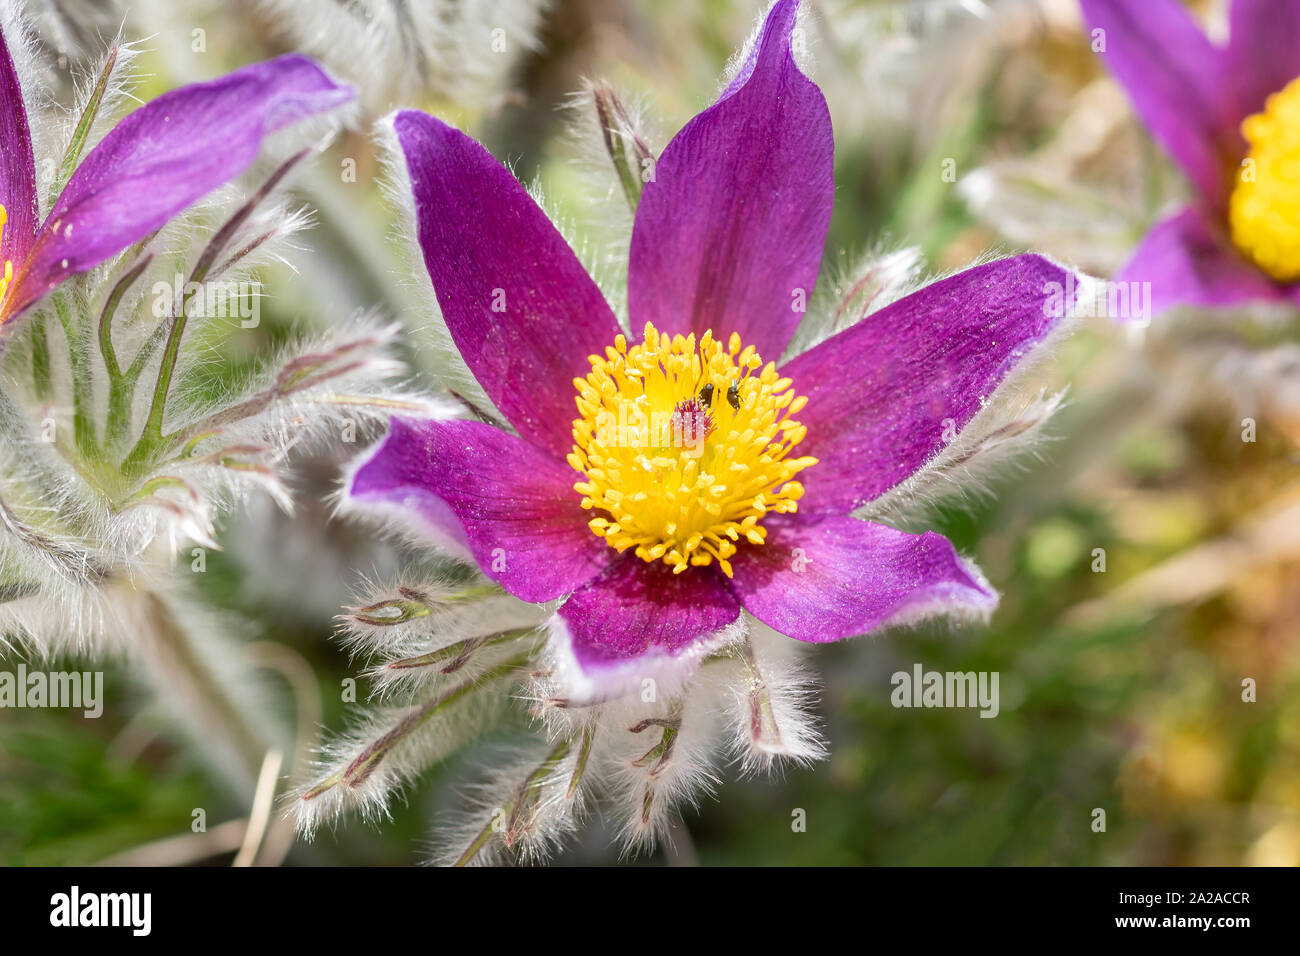 Pulsatilla vulgaris (pasque flower, pasqueflower) is a species of flowering plant belonging to the buttercup family (Ranunculaceae), found locally on Stock Photo